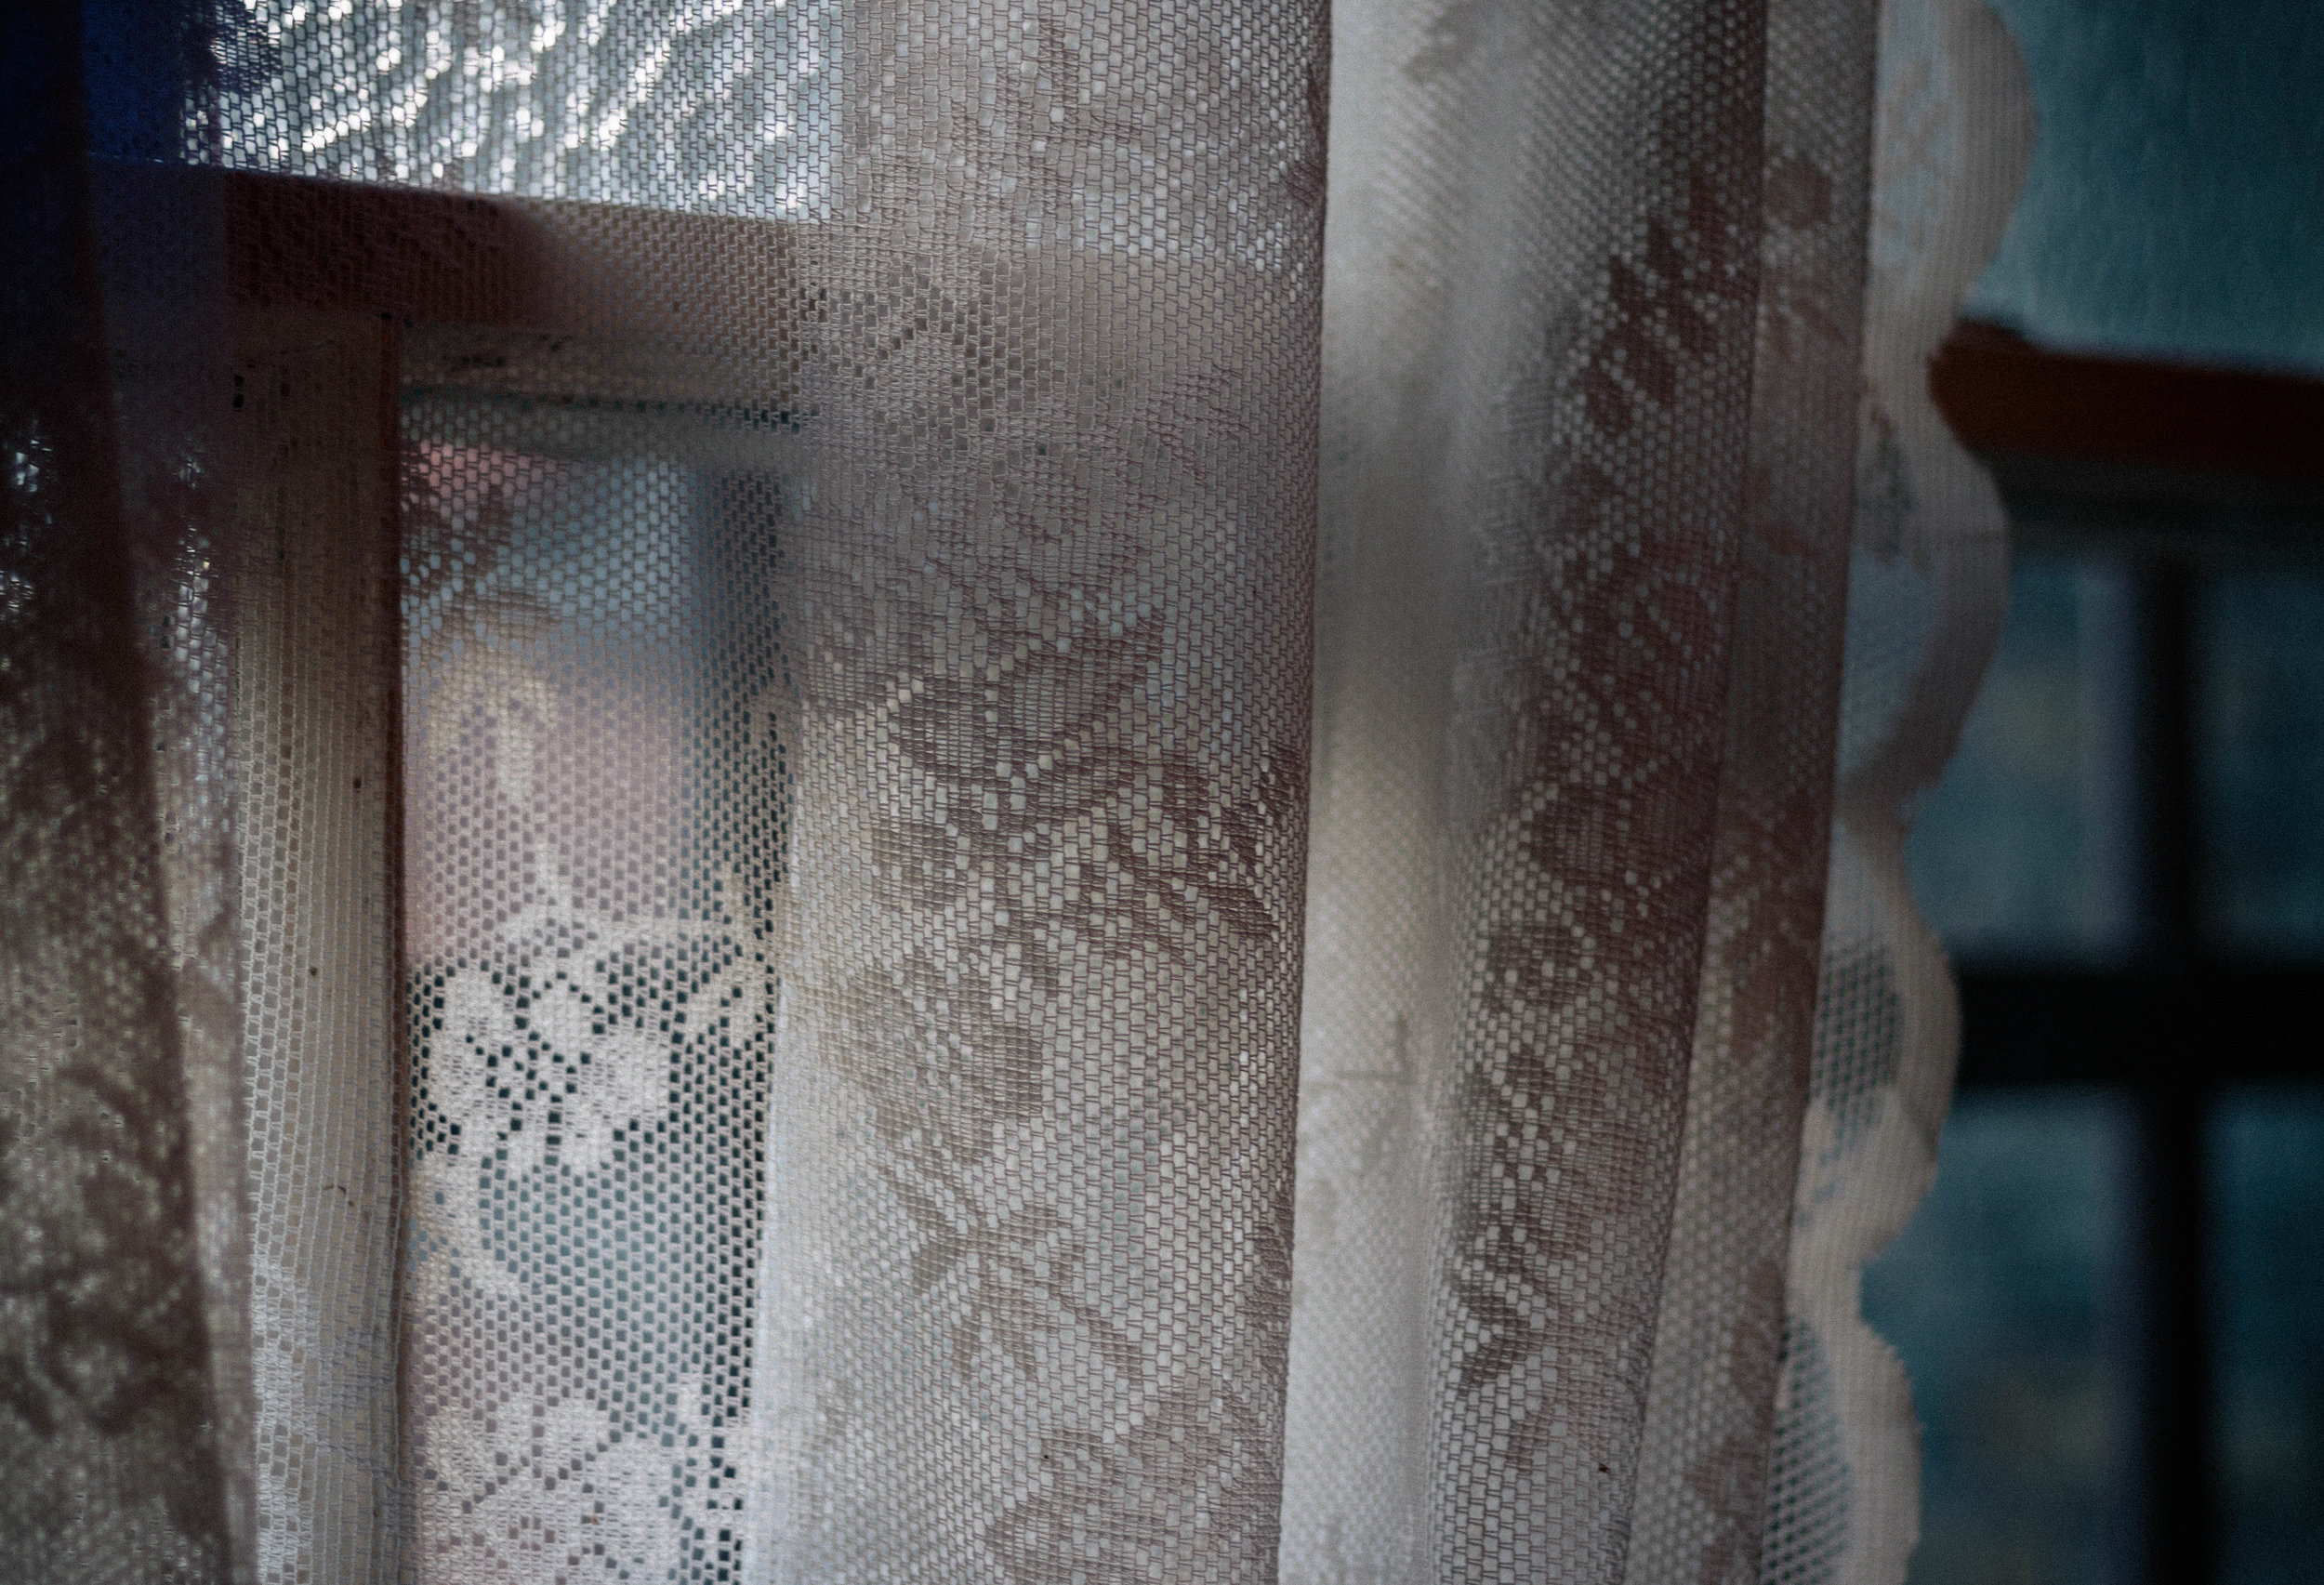 lace curtain.jpg